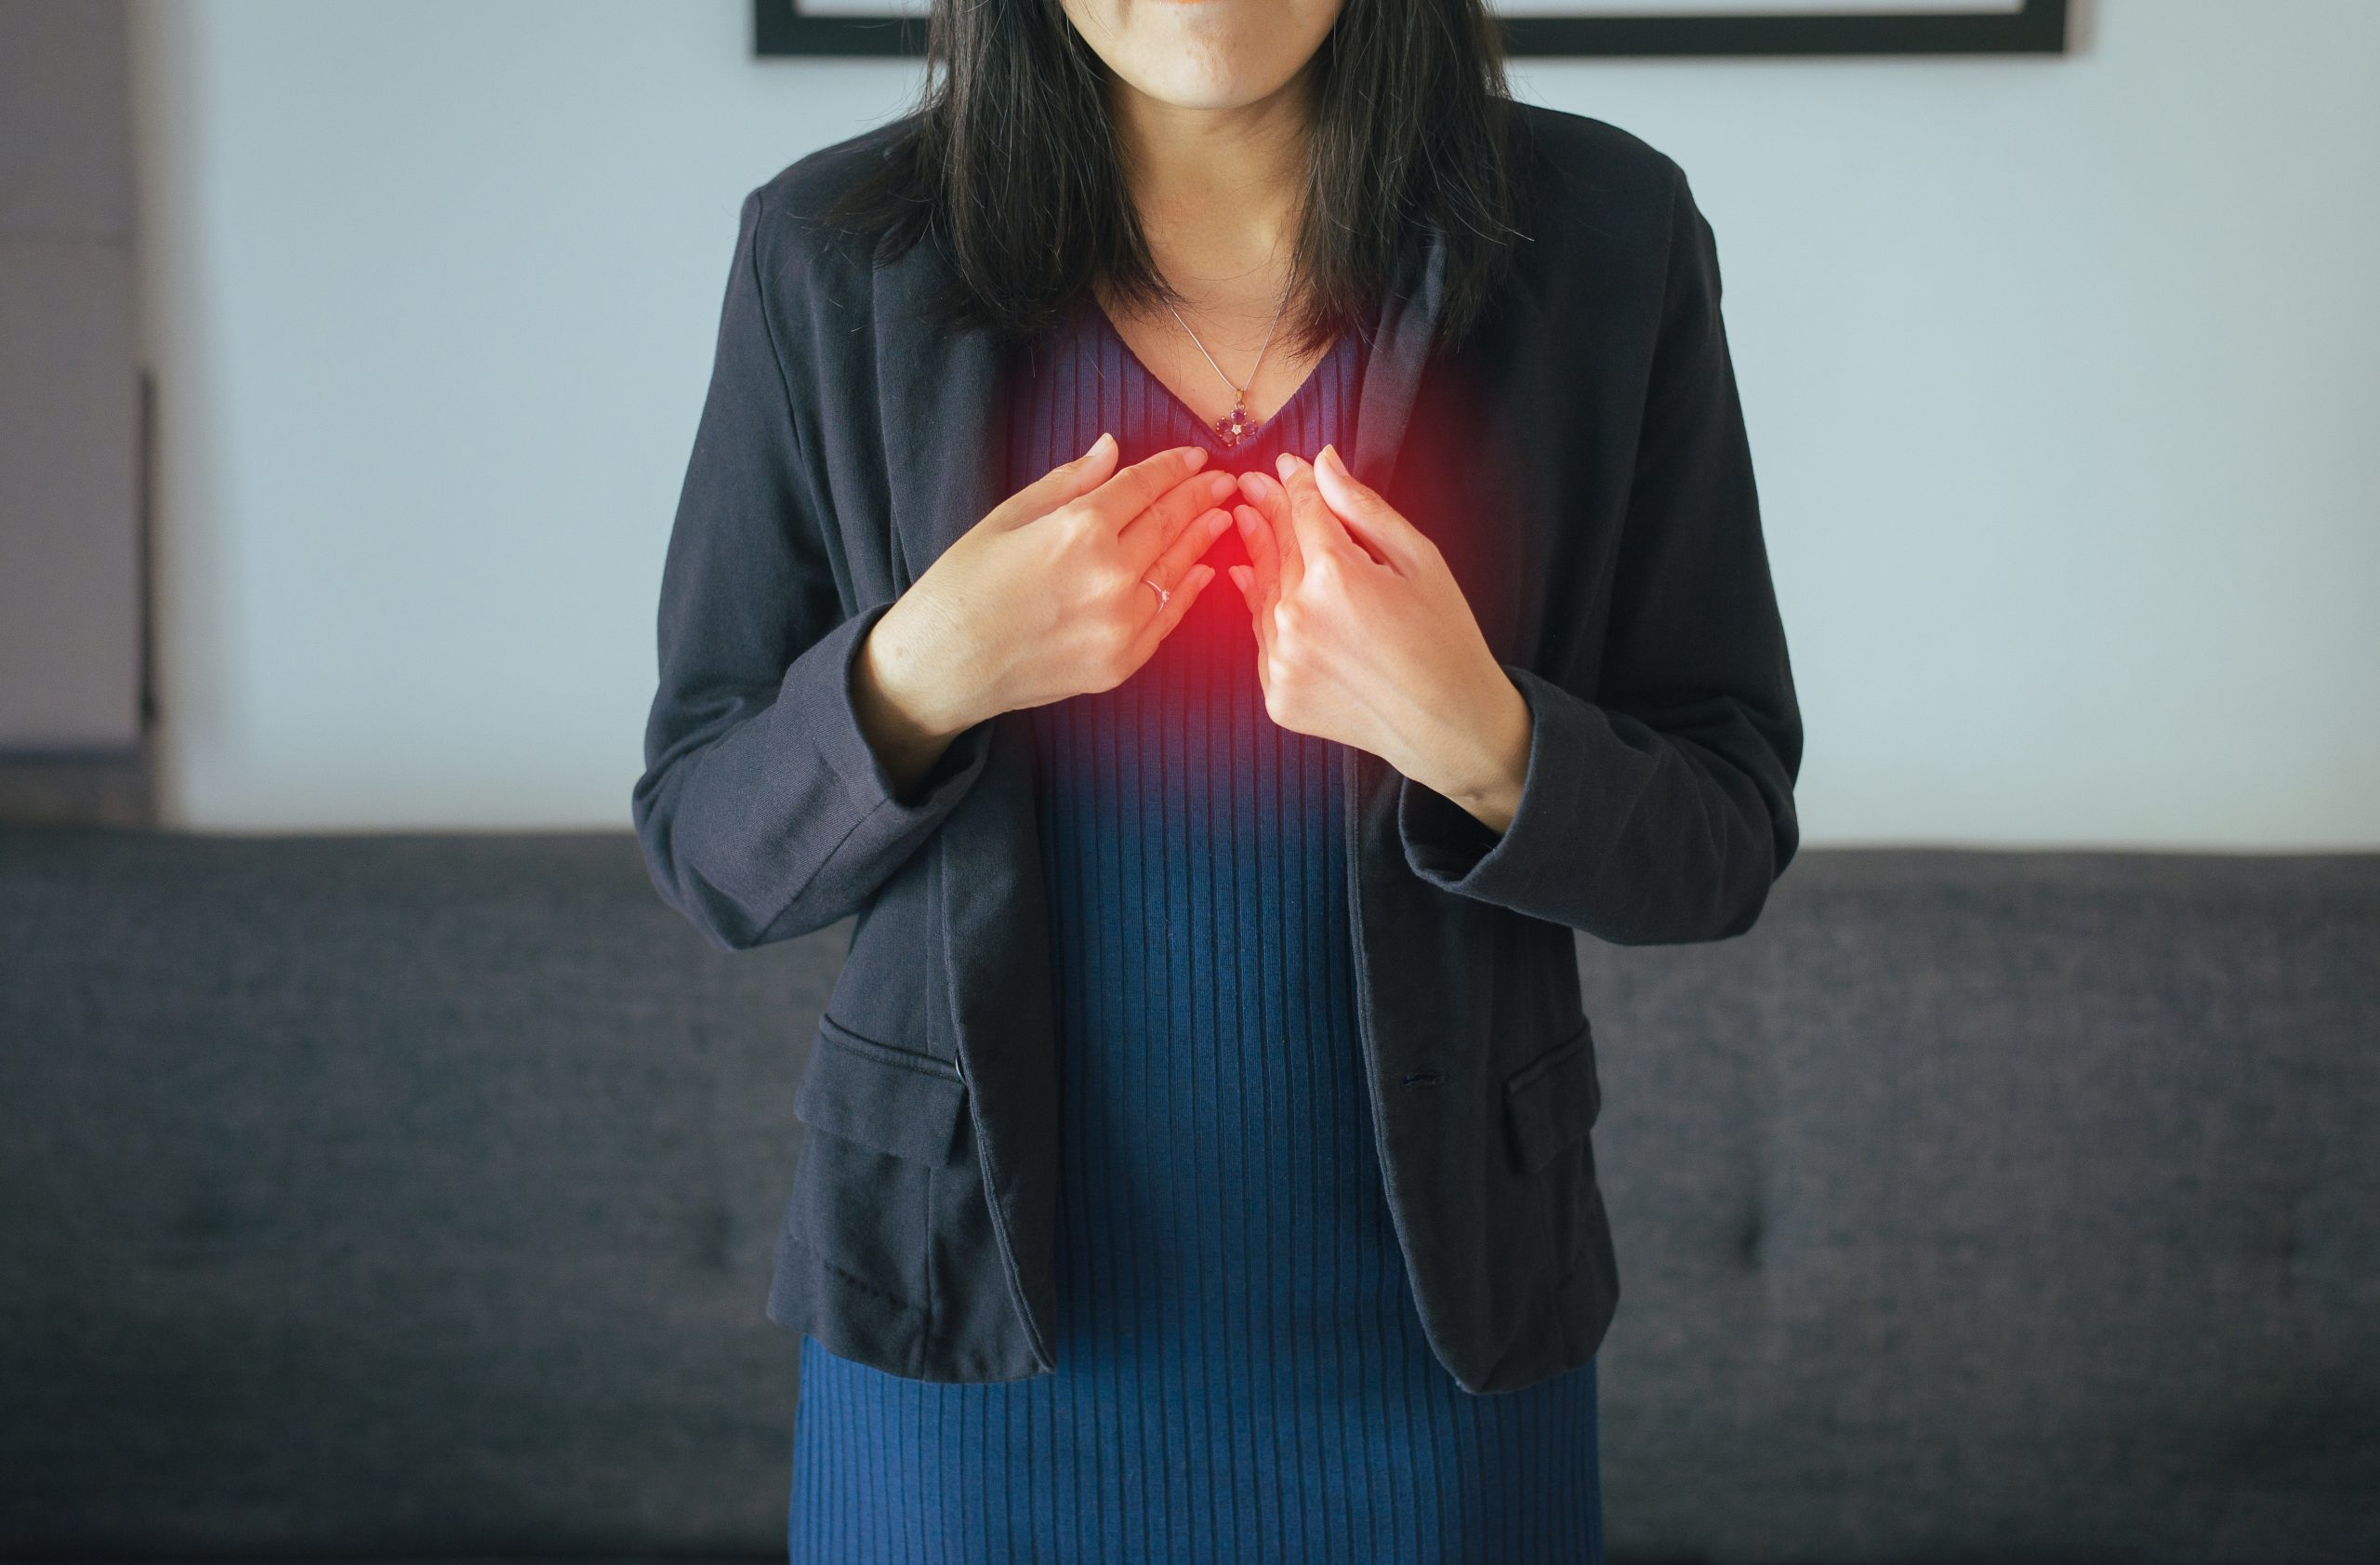 Asian woman having or symptomatic reflux acids